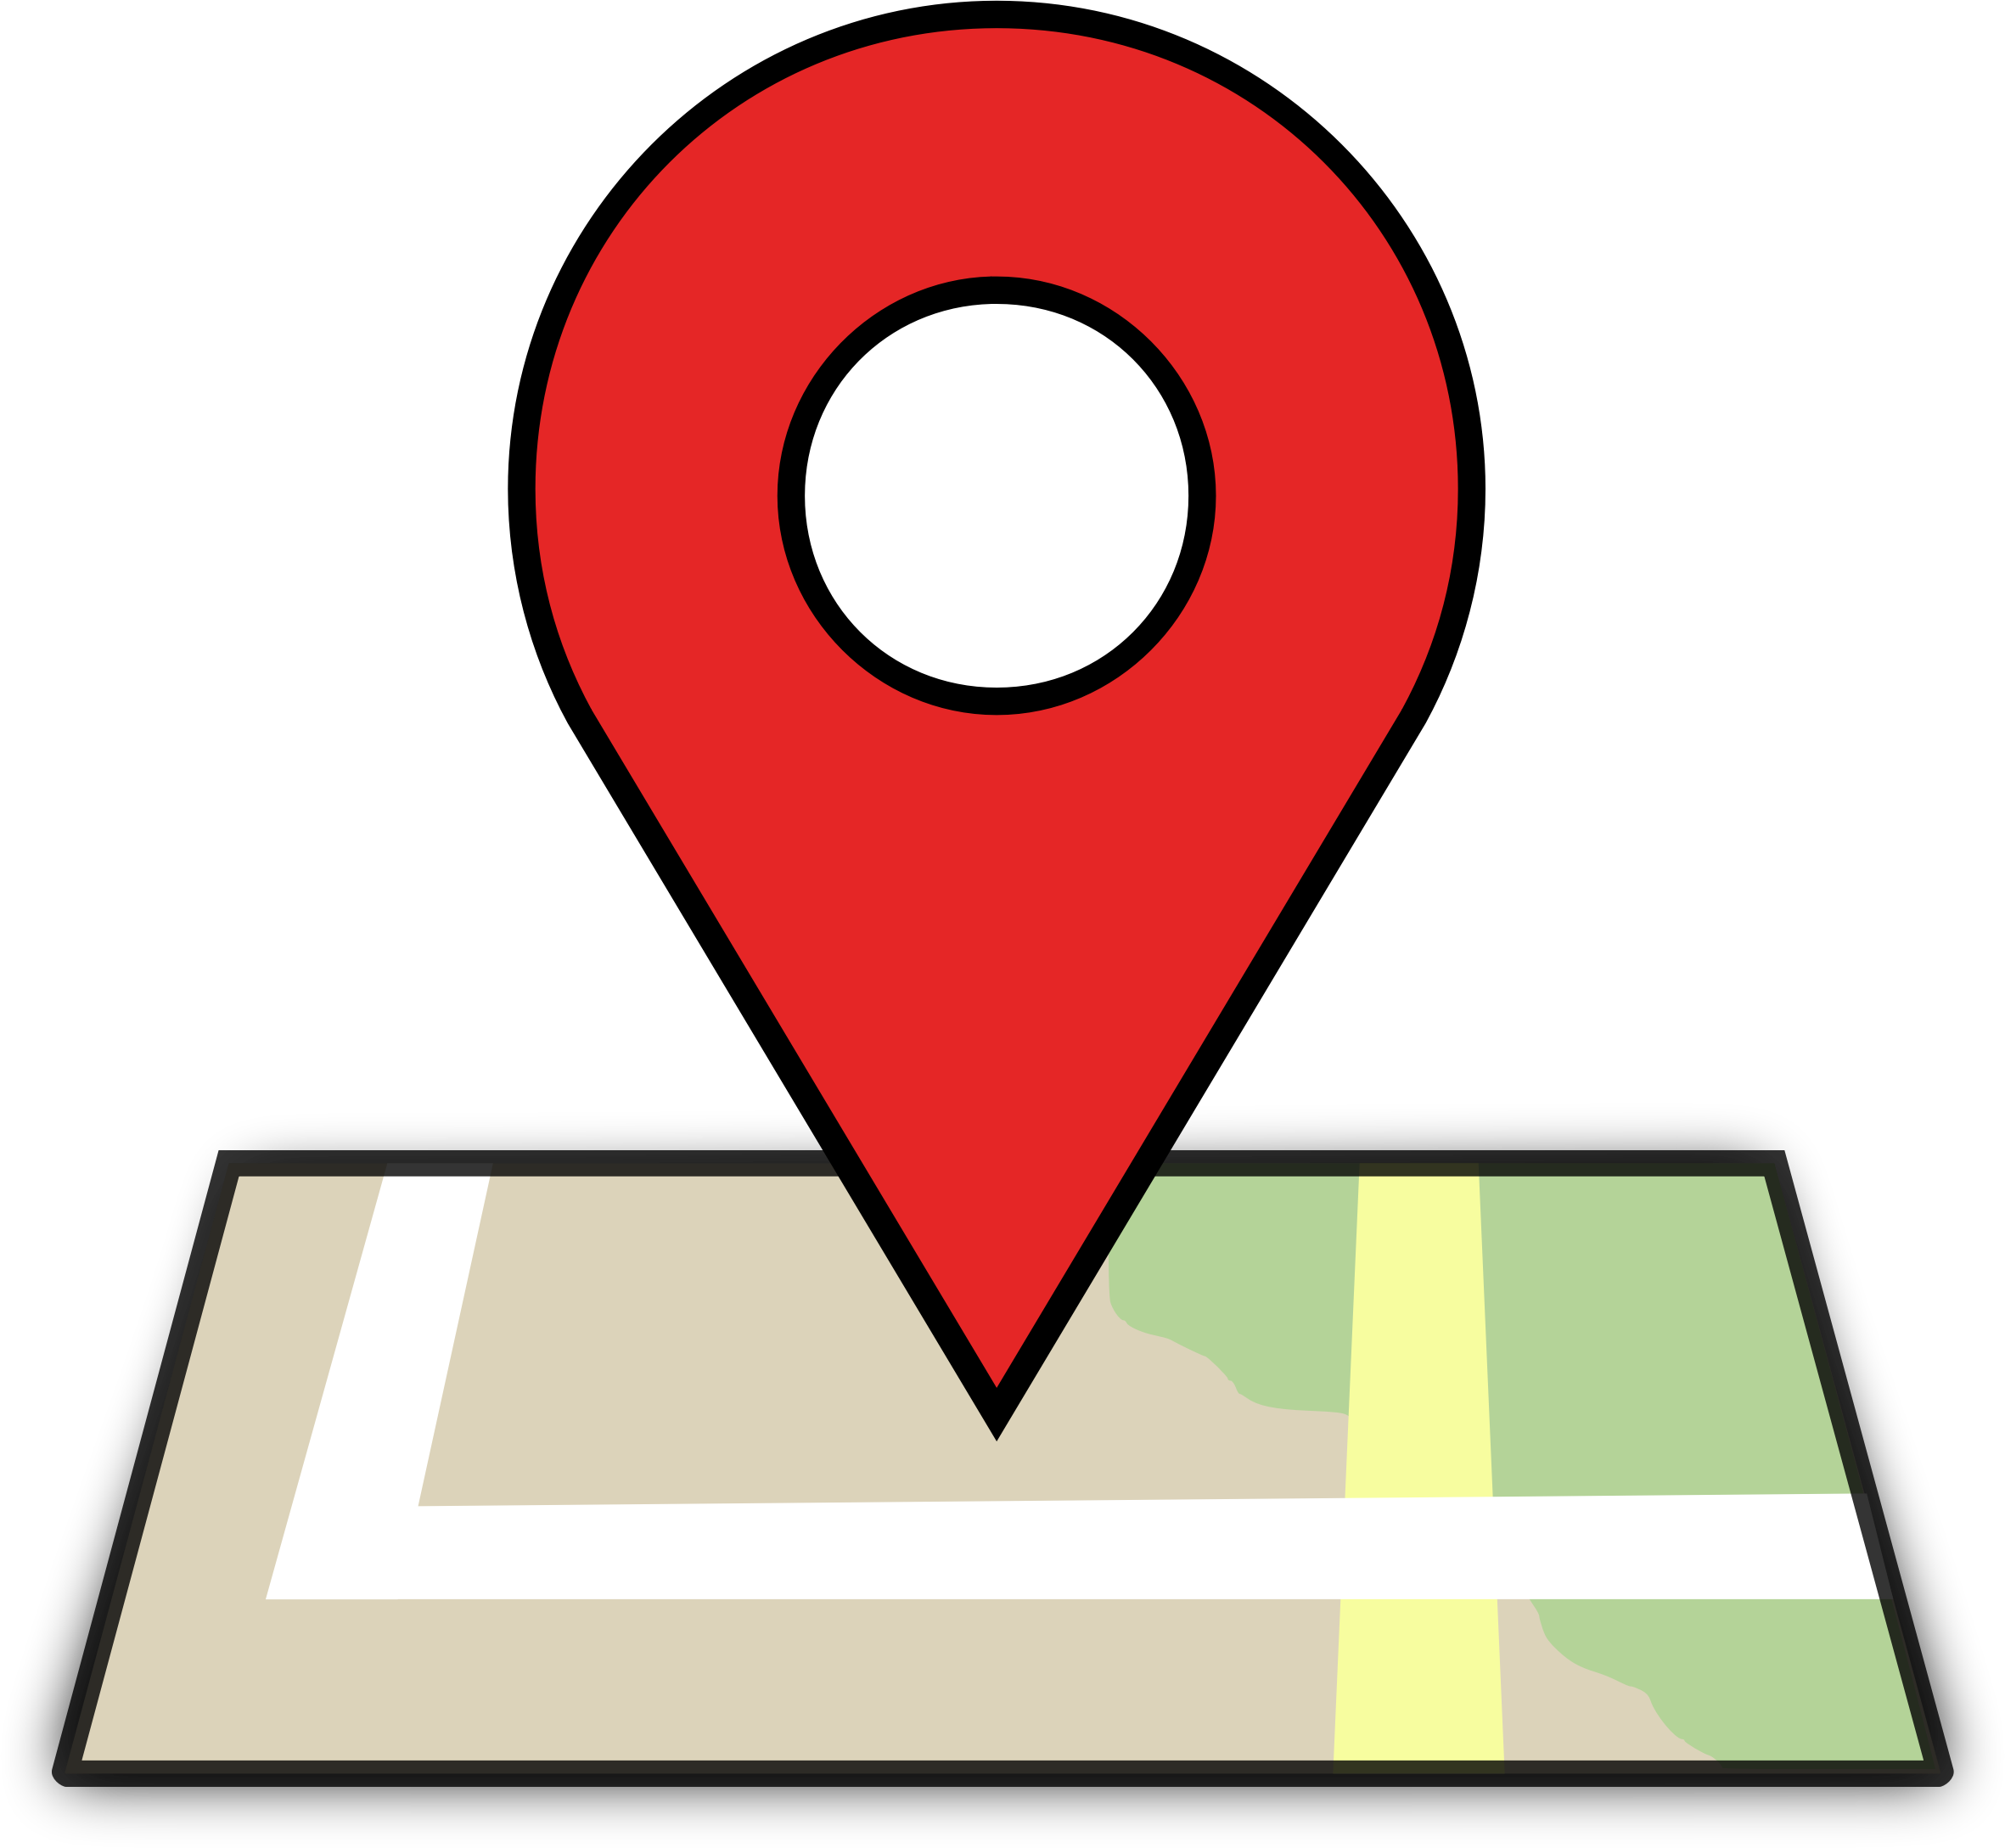 Clipart map location